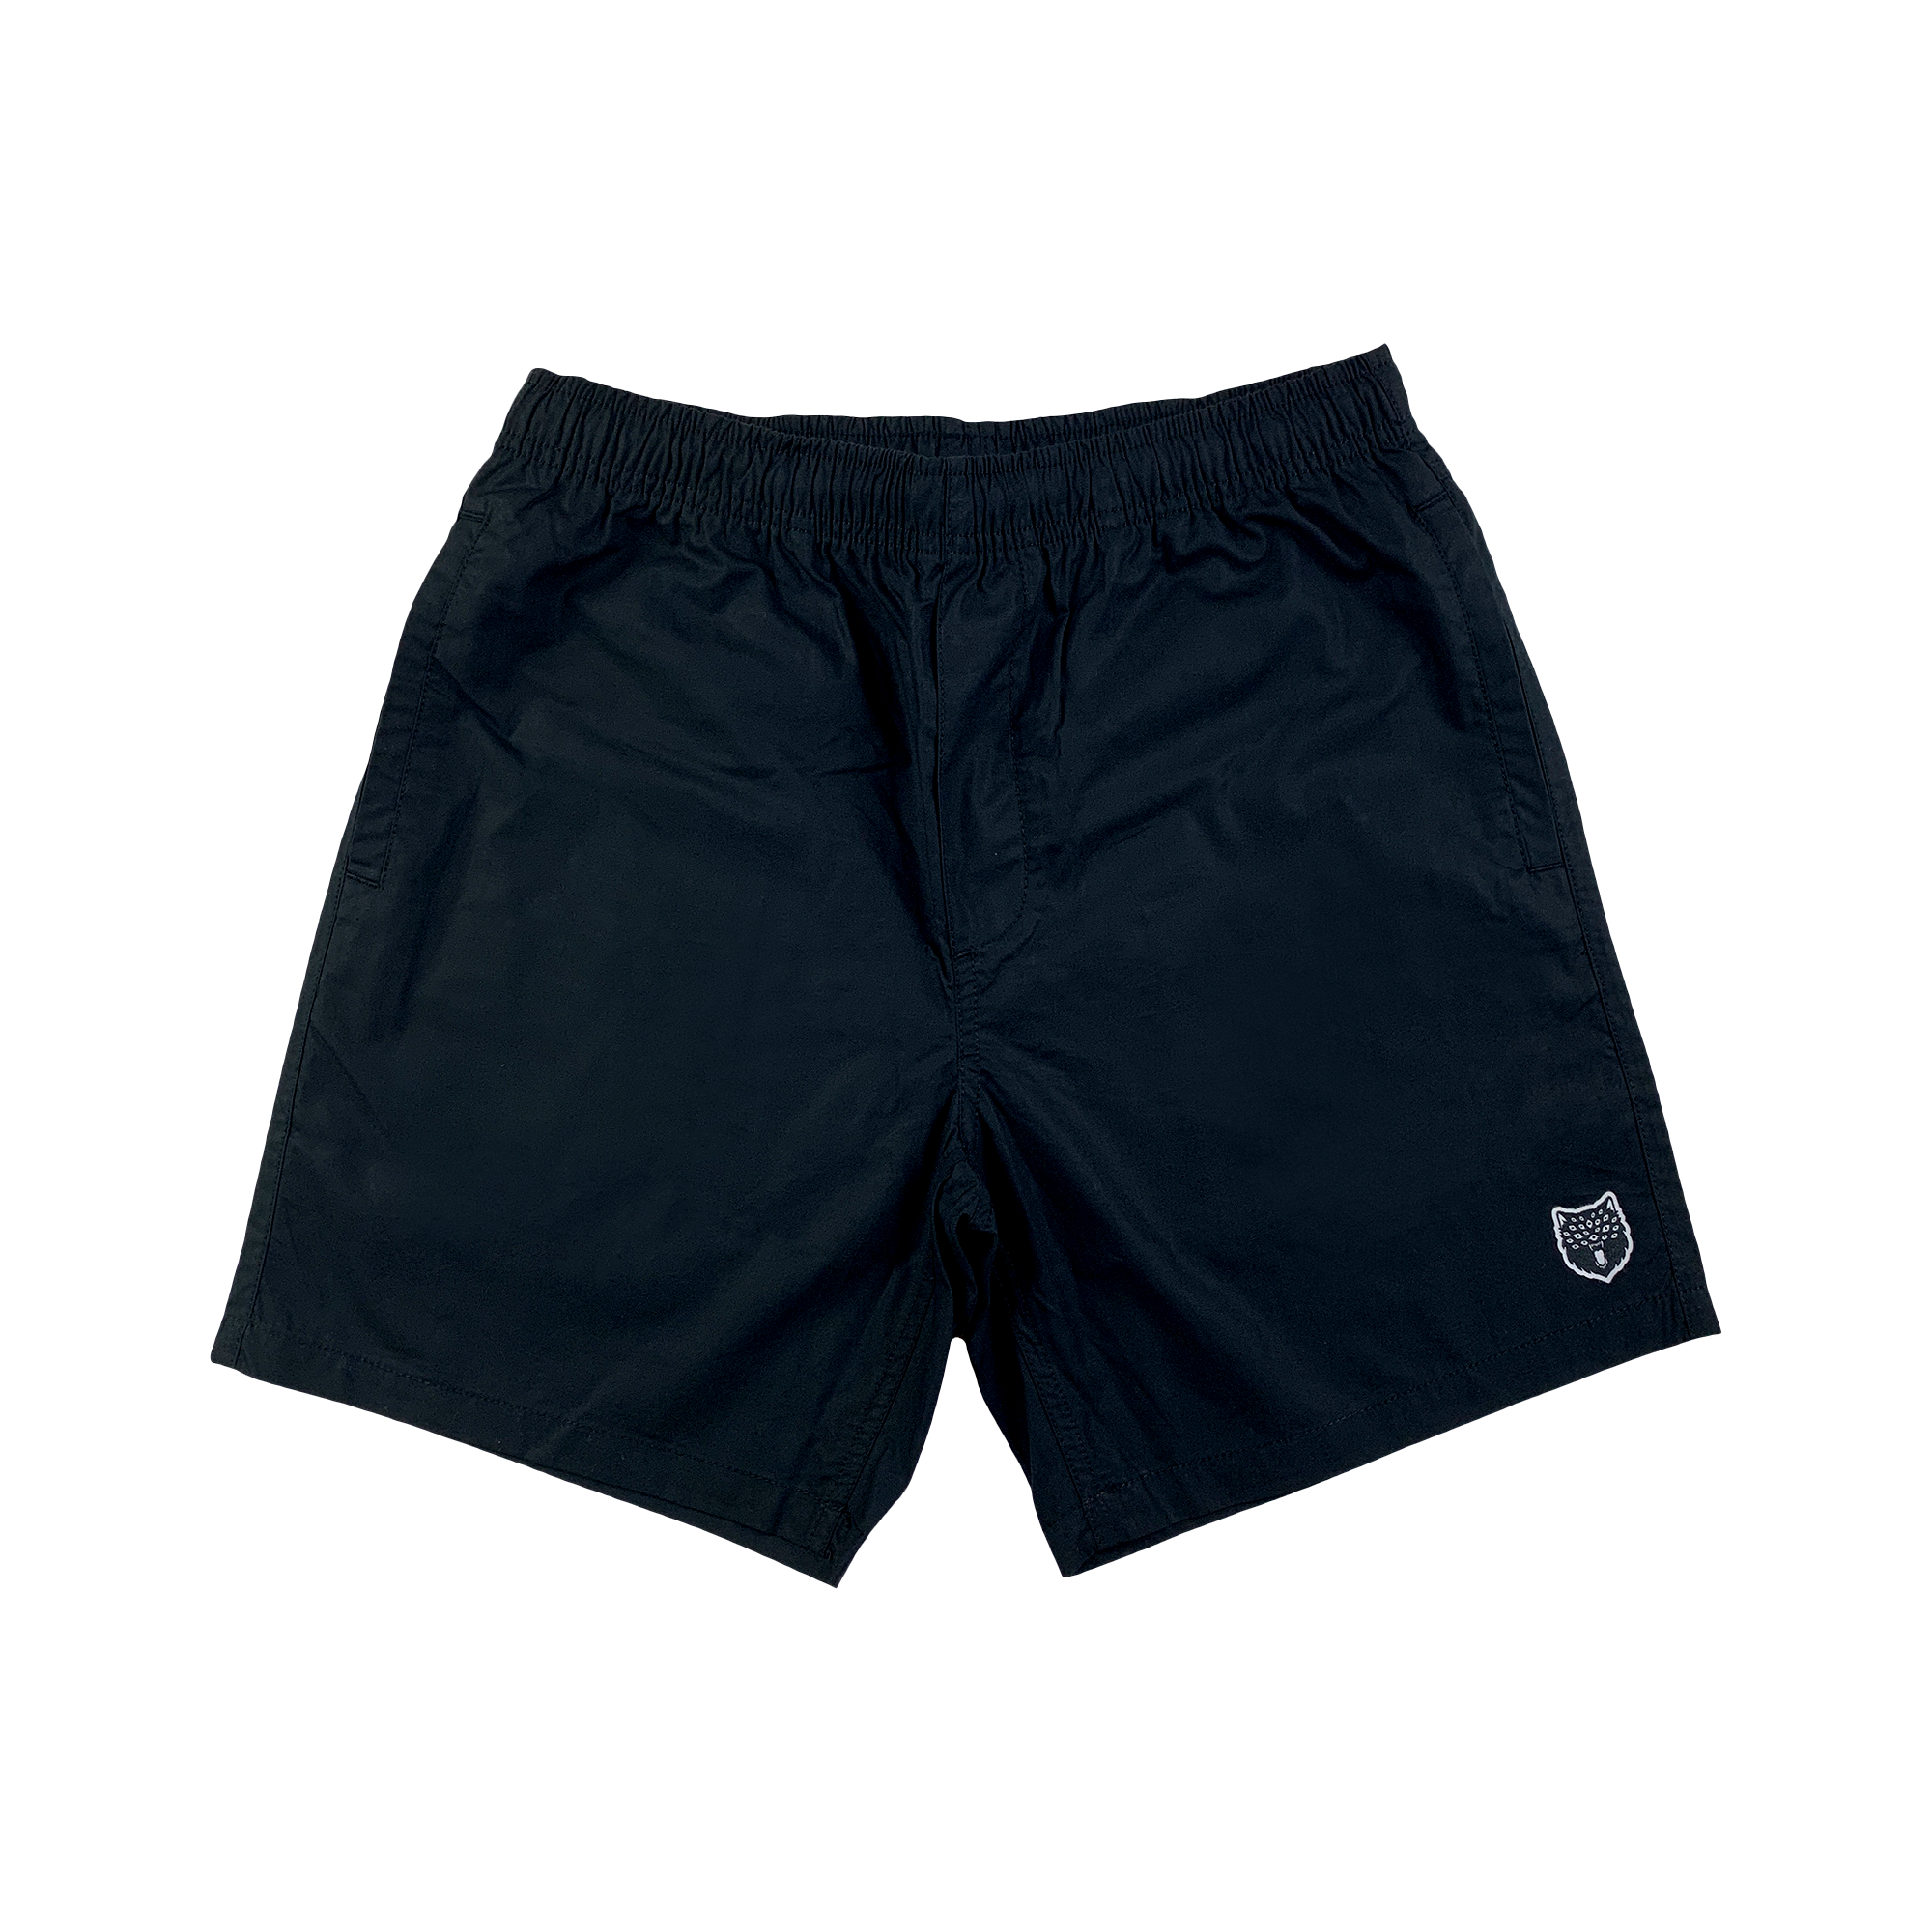 WARG BEACH SHORT : BLACK